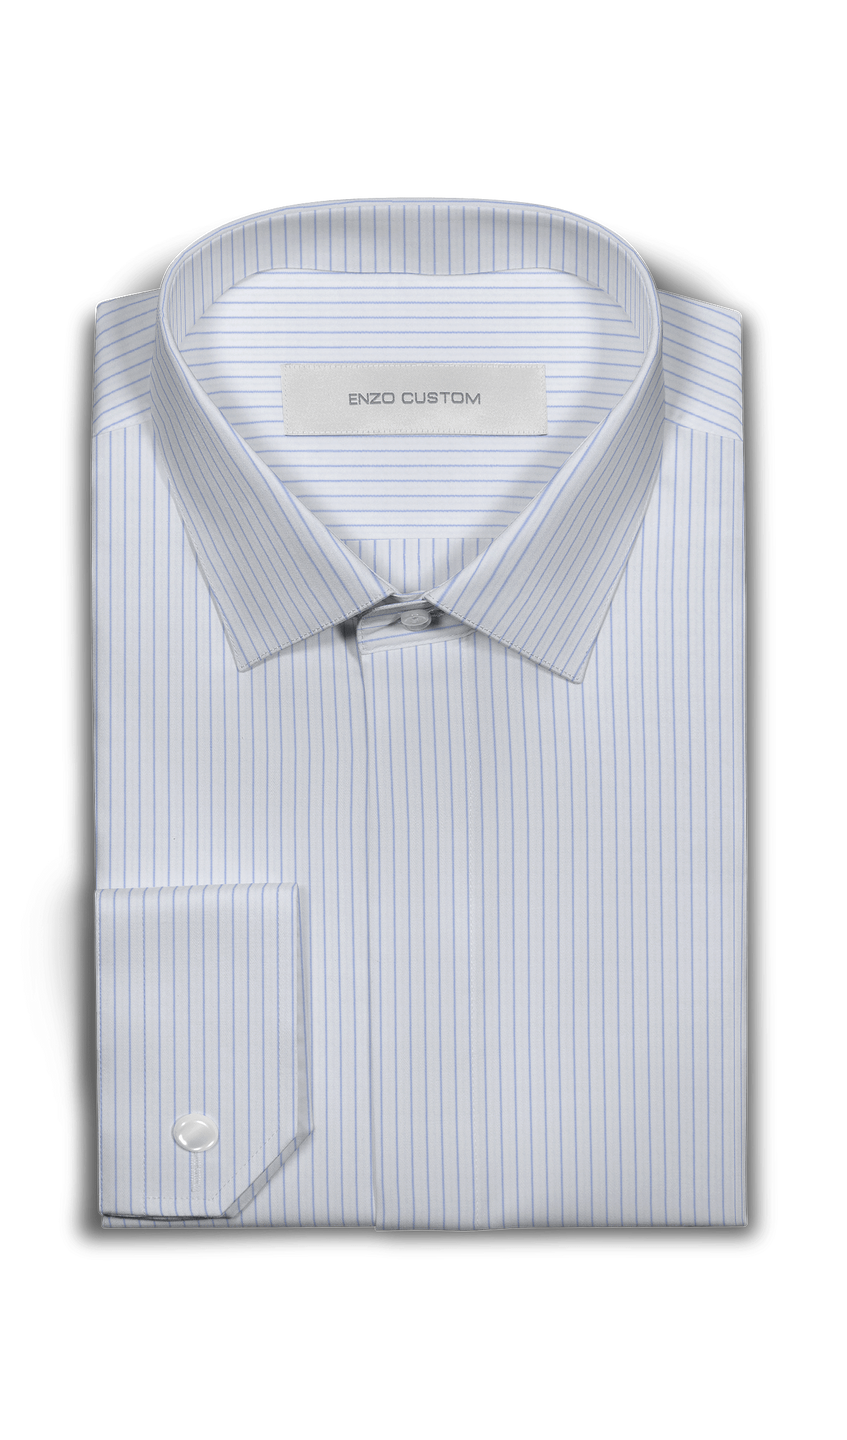 Enzo Sartori Shirt White/Blue Striped Dress Shirt